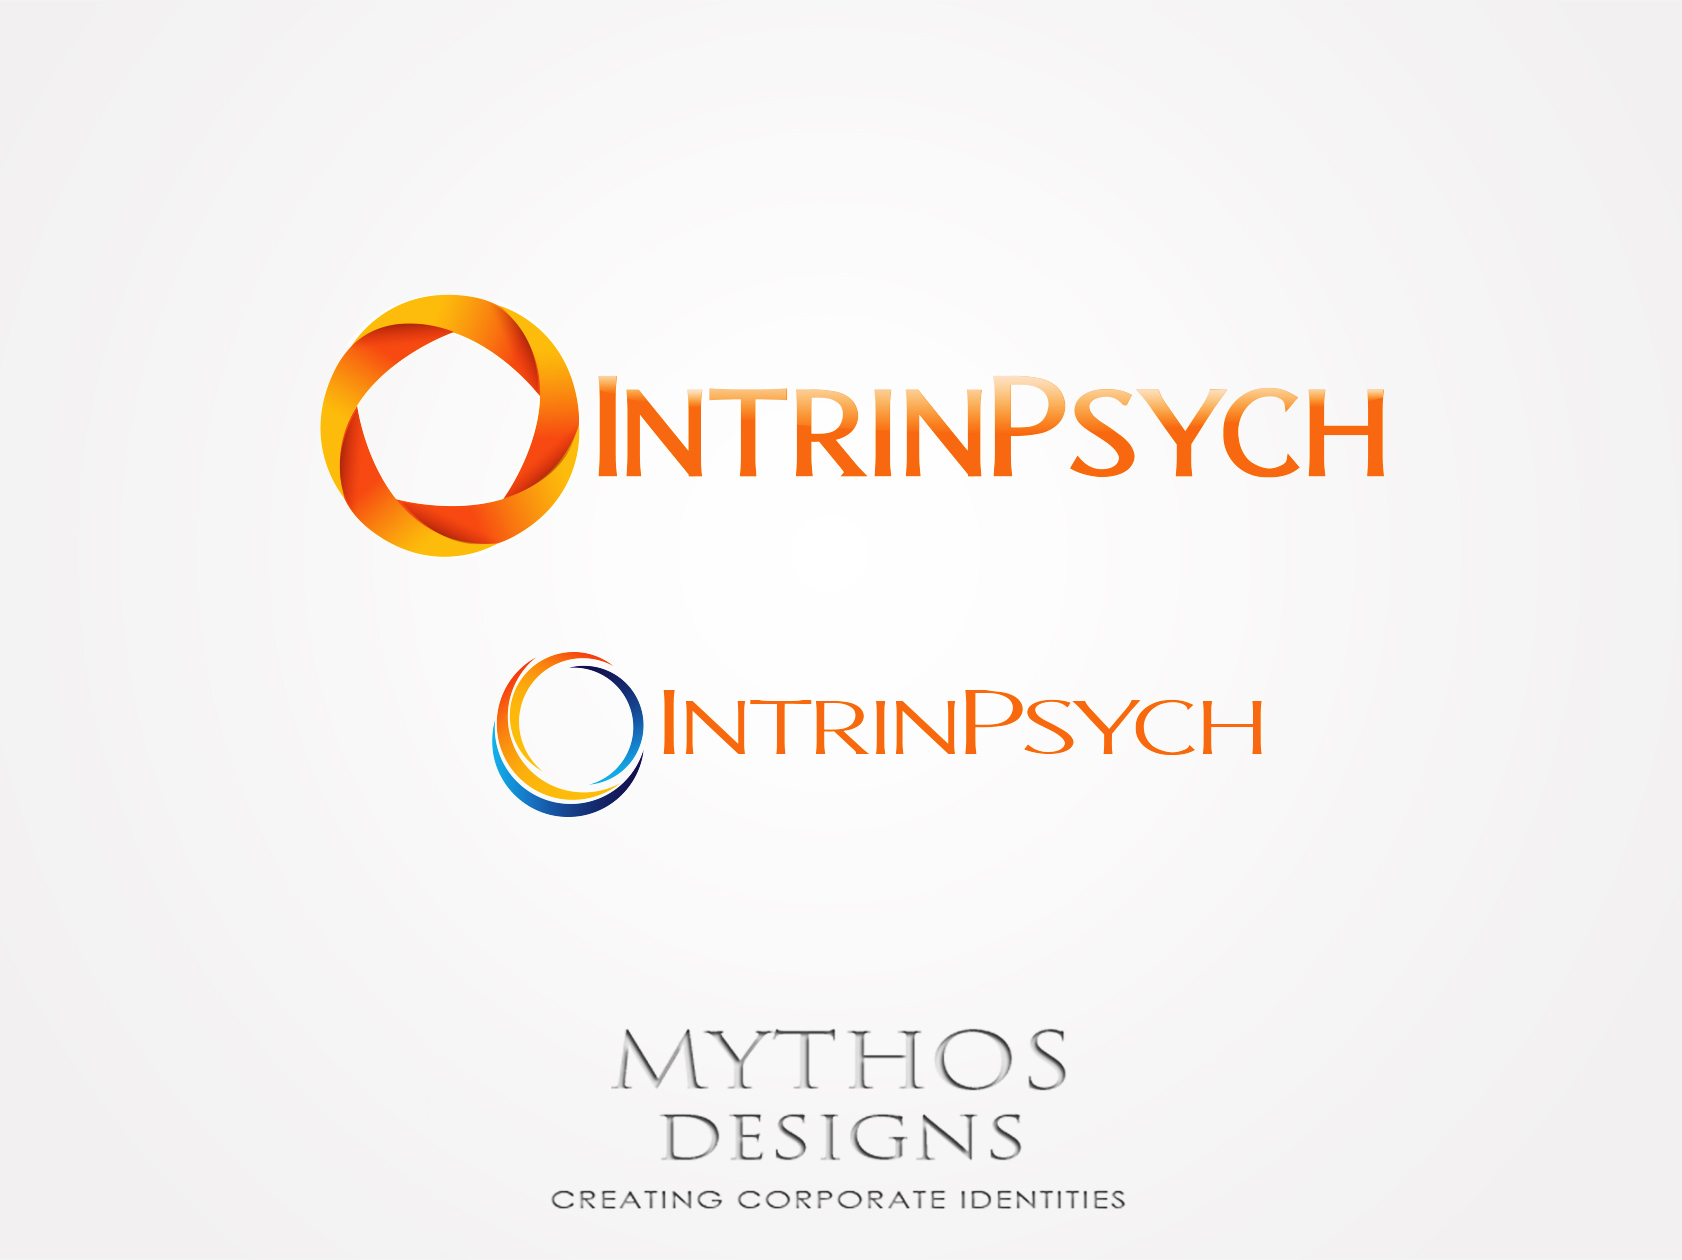 Logo Design by Mythos Designs - Entry No. 112 in the Logo Design Contest New Logo Design for IntrinPsych.